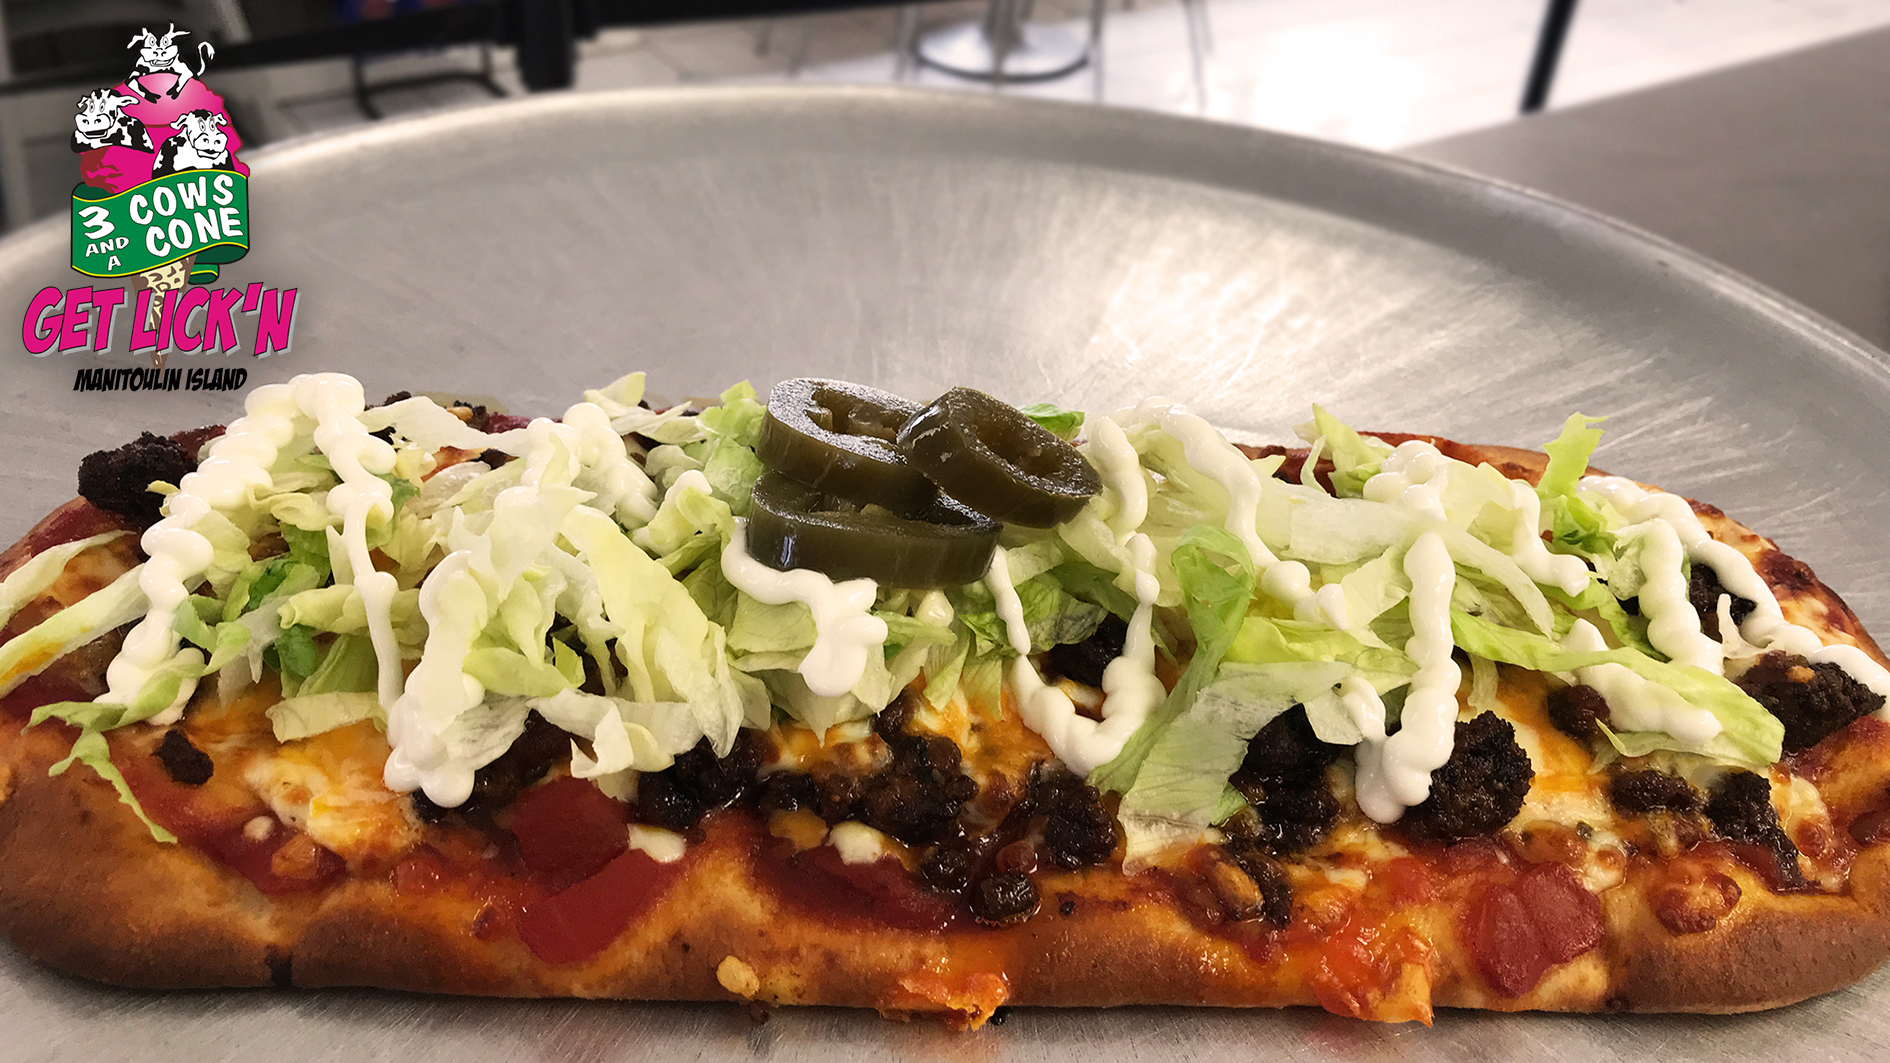 3 Cows and a Cone Taco flatbread.  Made with a salsa base, and topped with seasoned hamburger, lettuce, jalapeños, sour cream, cheddar and mozzarella